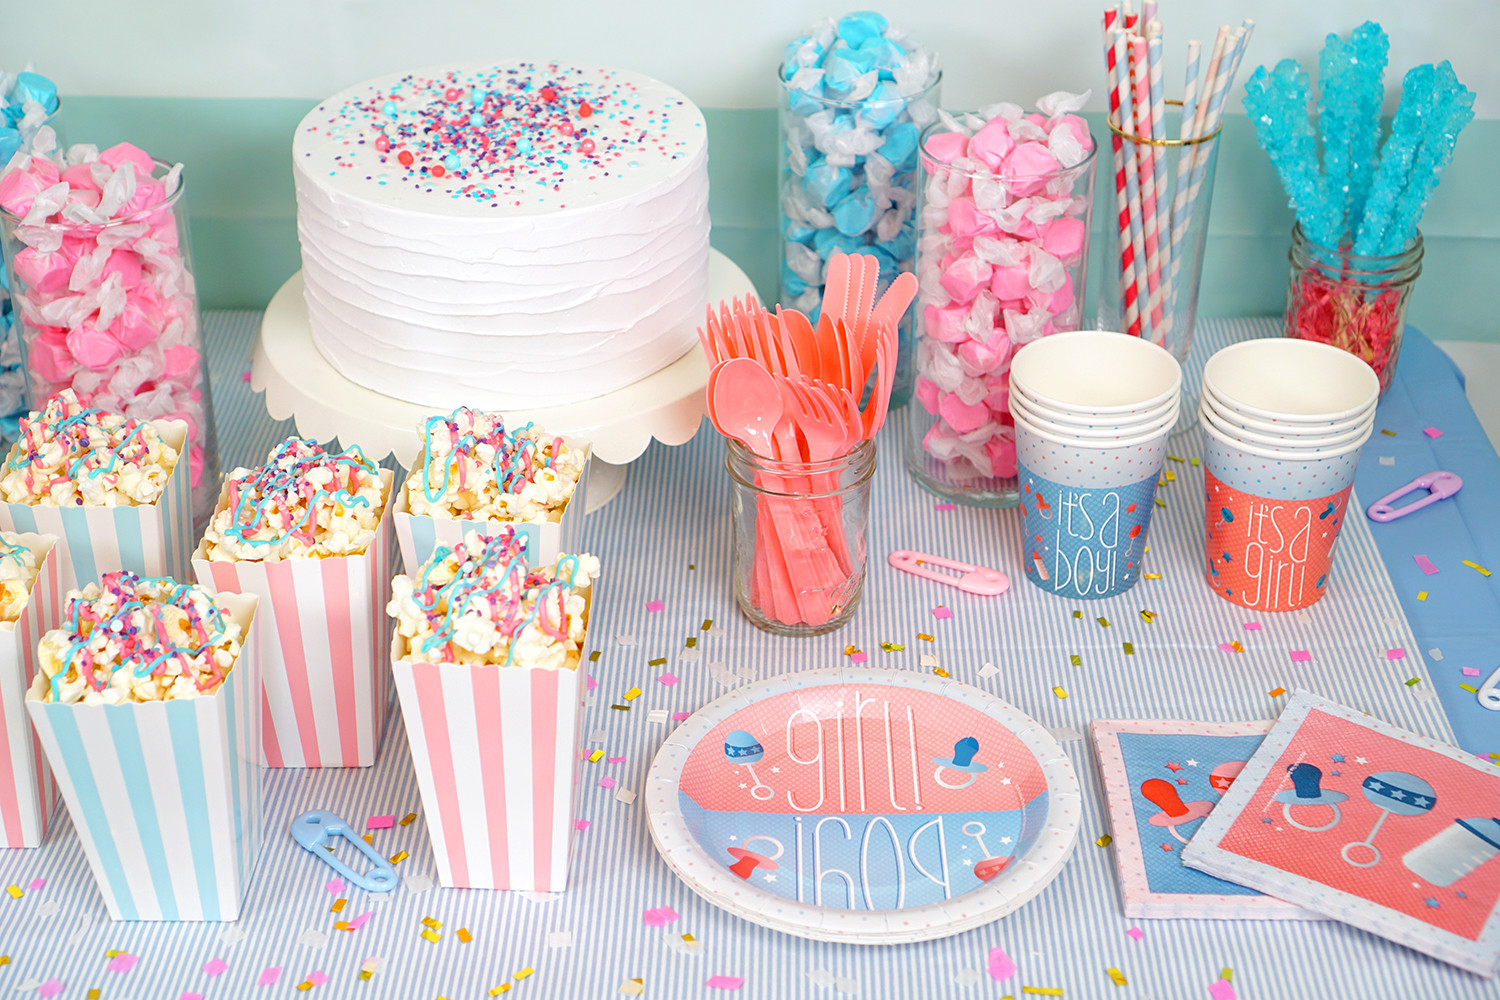 Different Ideas For A Gender Reveal Party  Gender Reveal Party Ideas Happiness is Homemade